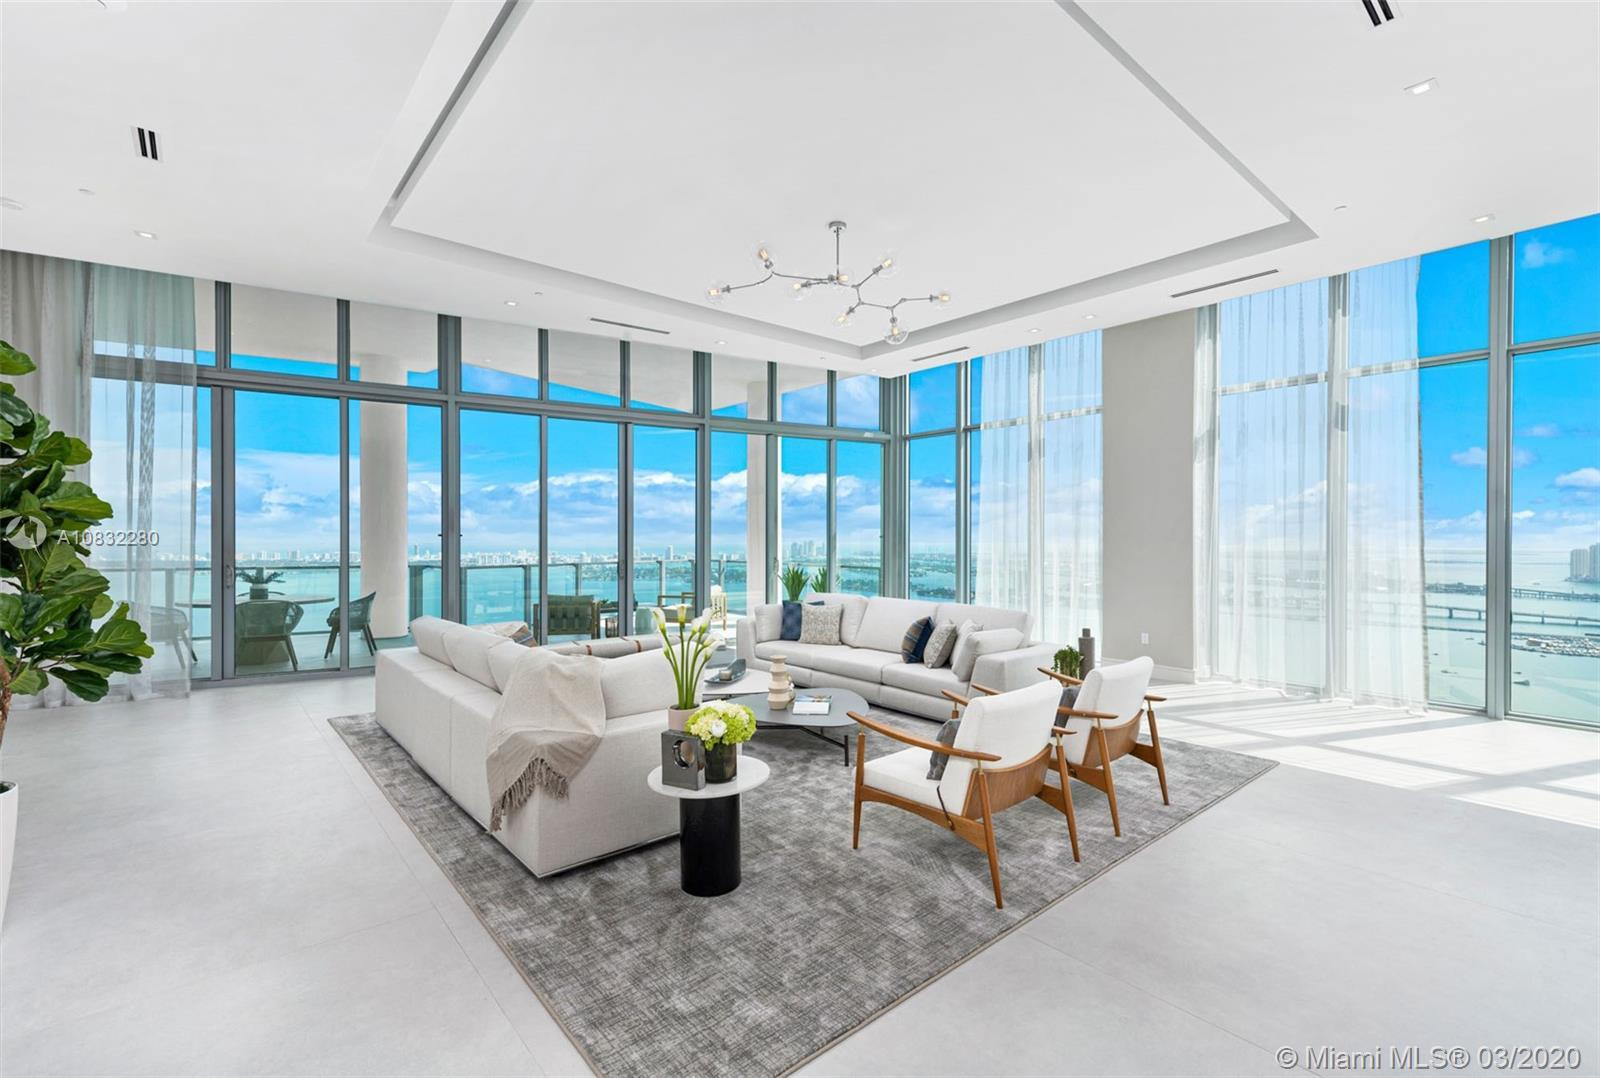 Enter this one of a kind lower penthouse and be prepared to be awestruck by views through 15 ft floo